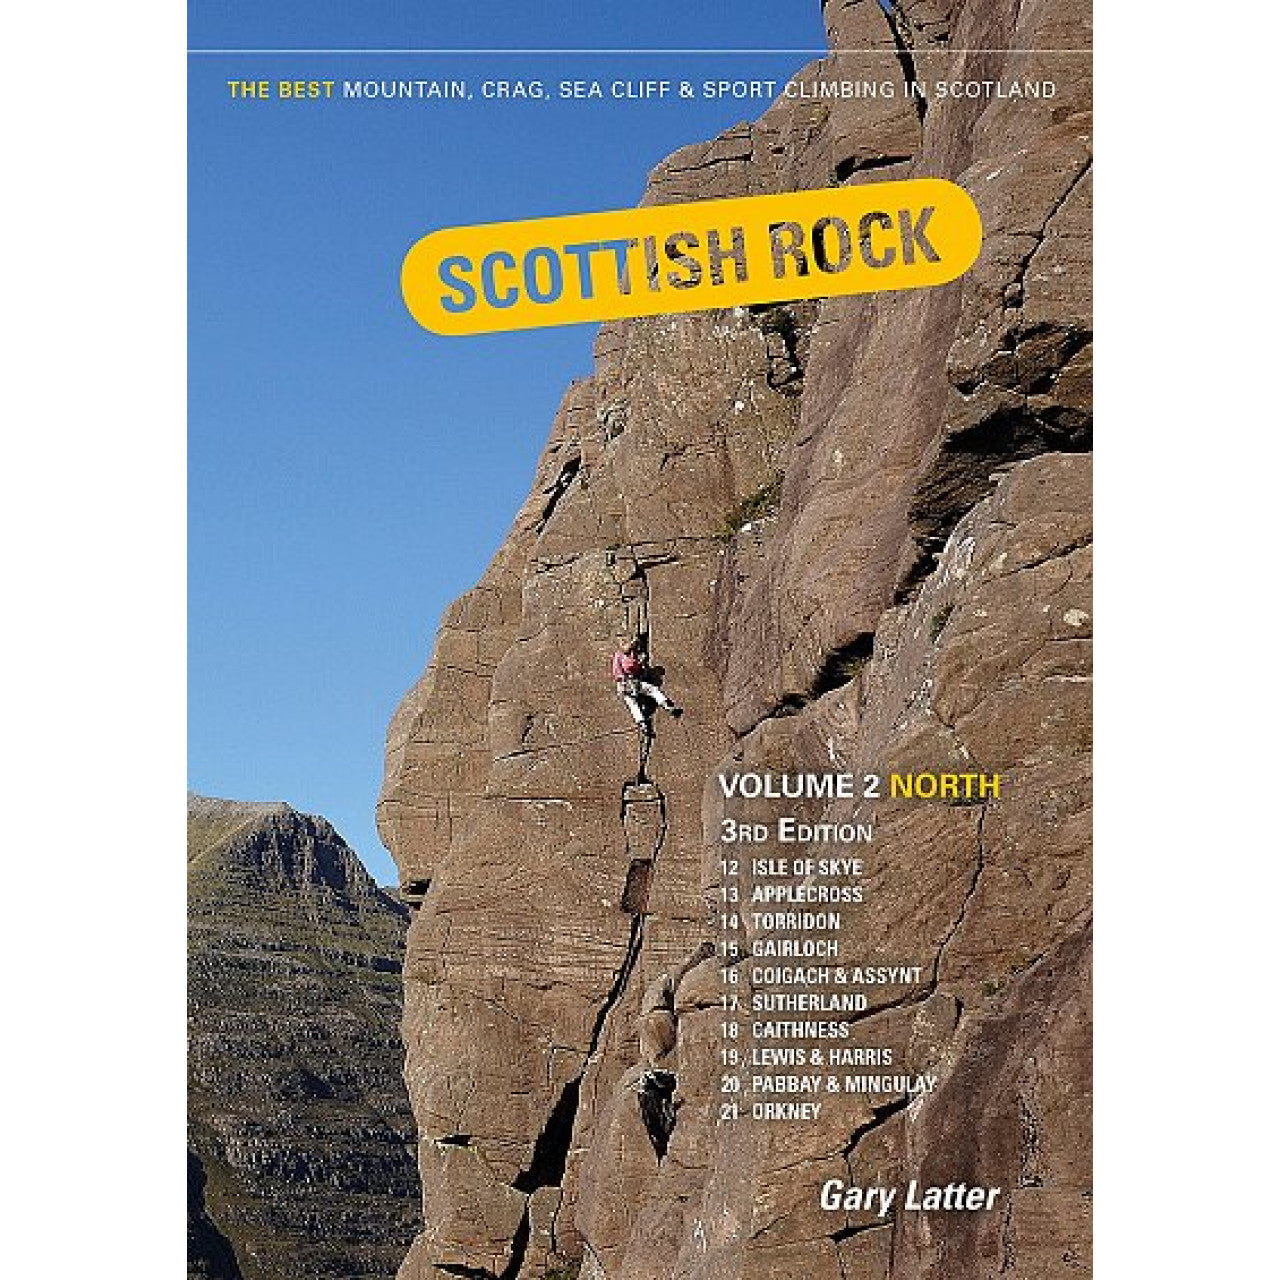 Scottish Rock Volume 2